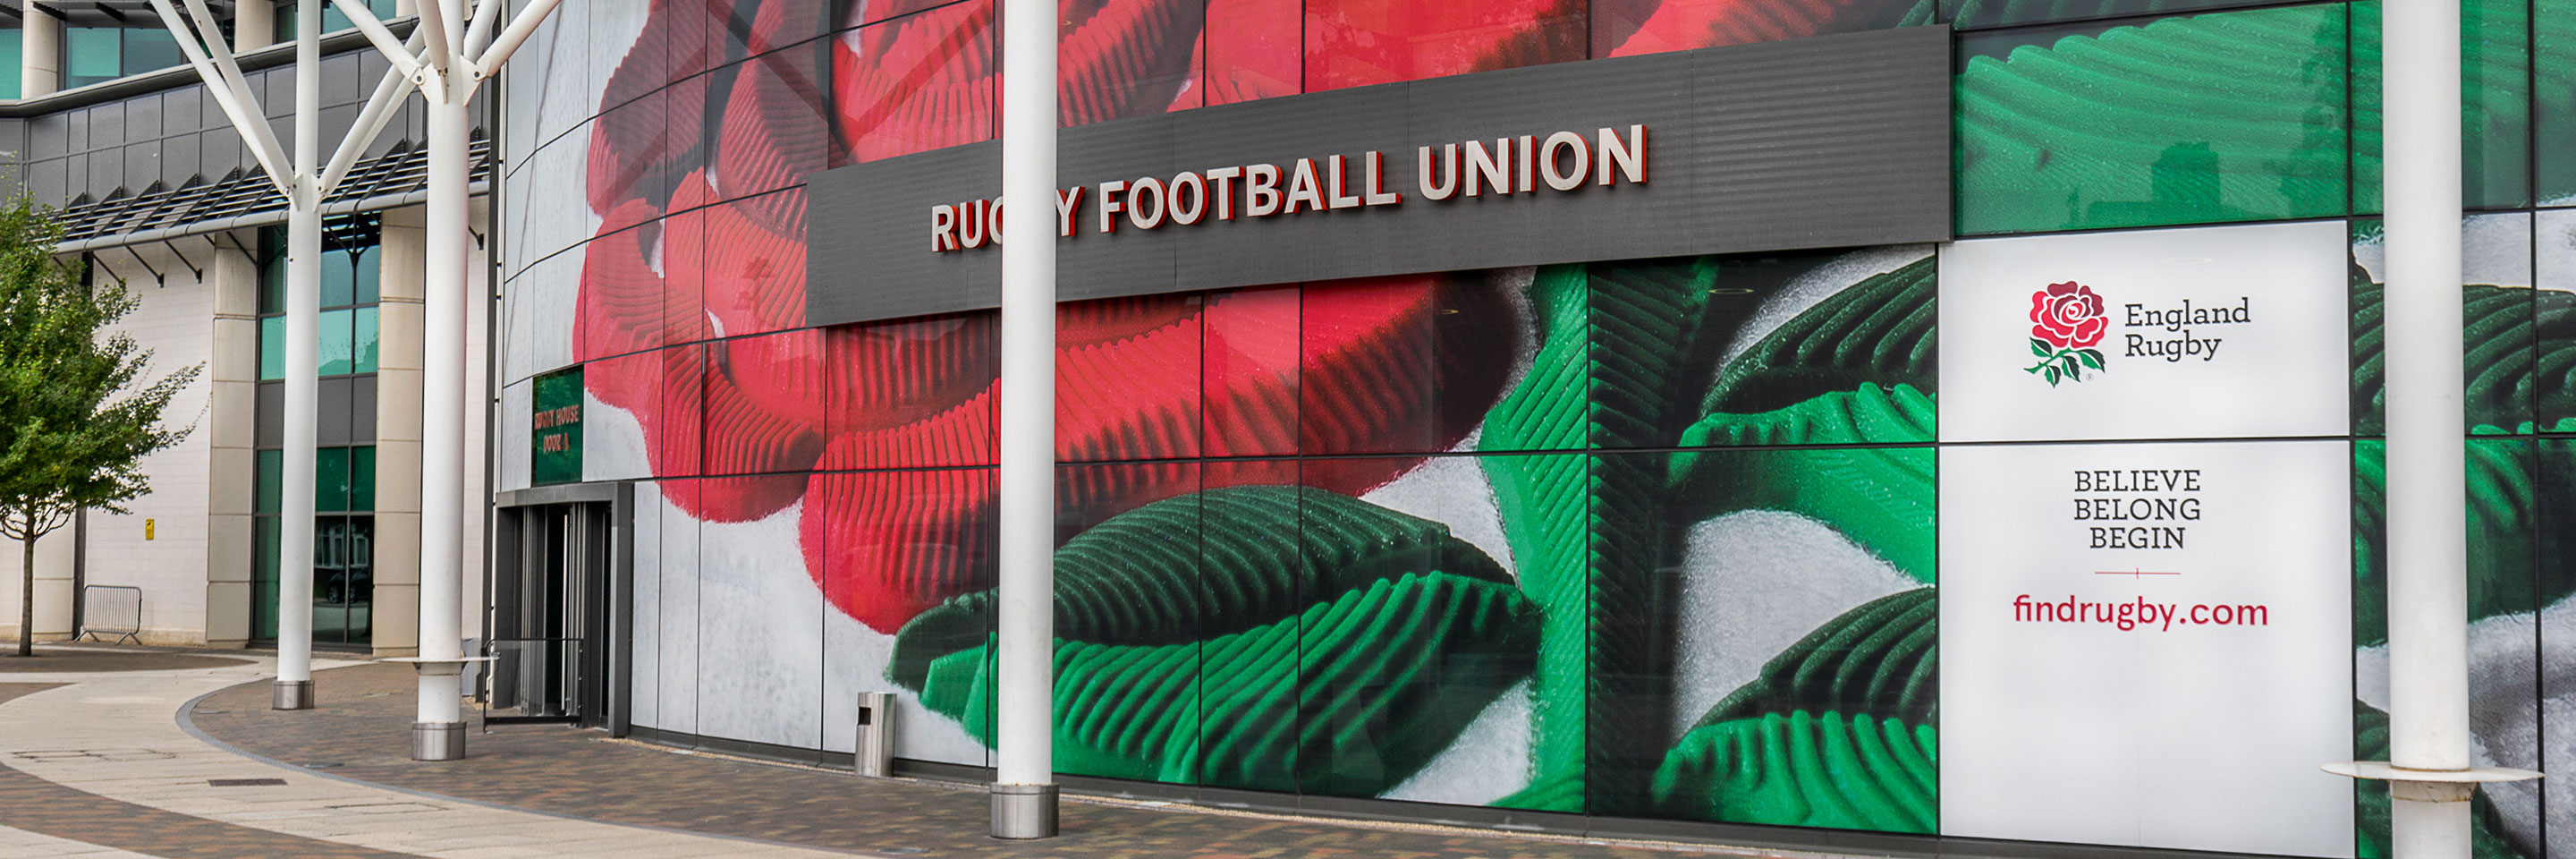 Twickenham Rugby Stadium entrance